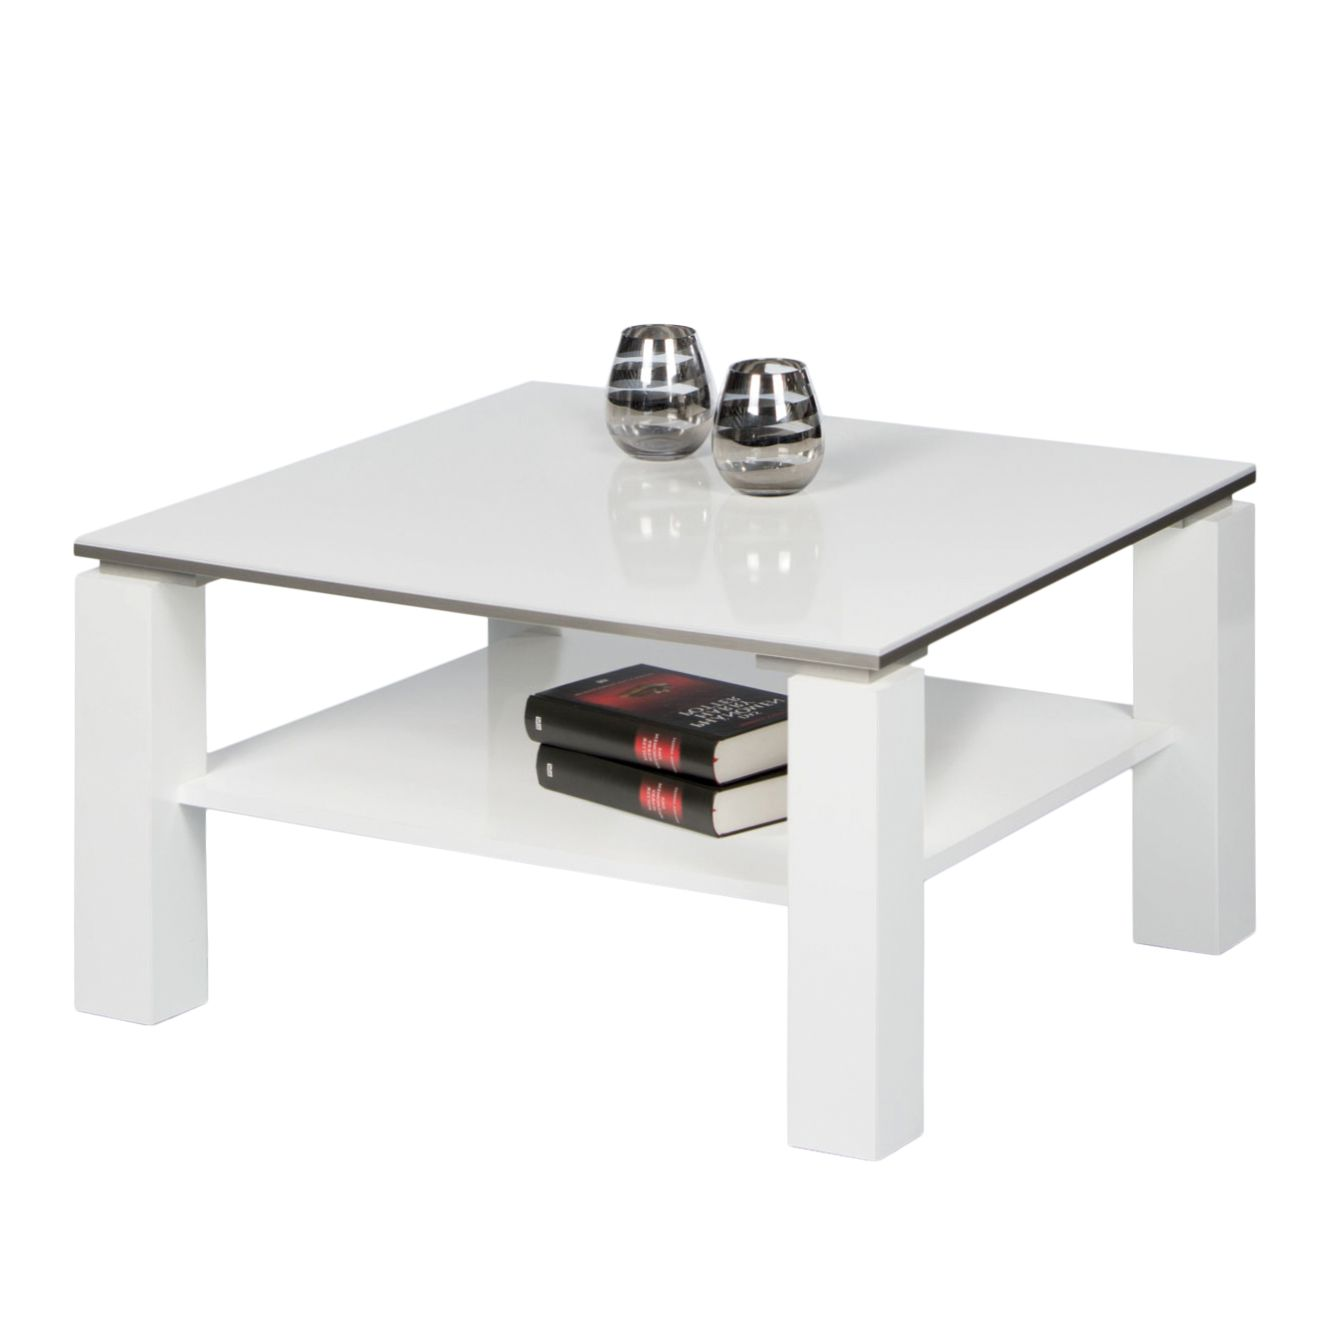 Couchtisch Brora Pin By Ladendirekt On Tische Table Coffee Table Wayfair